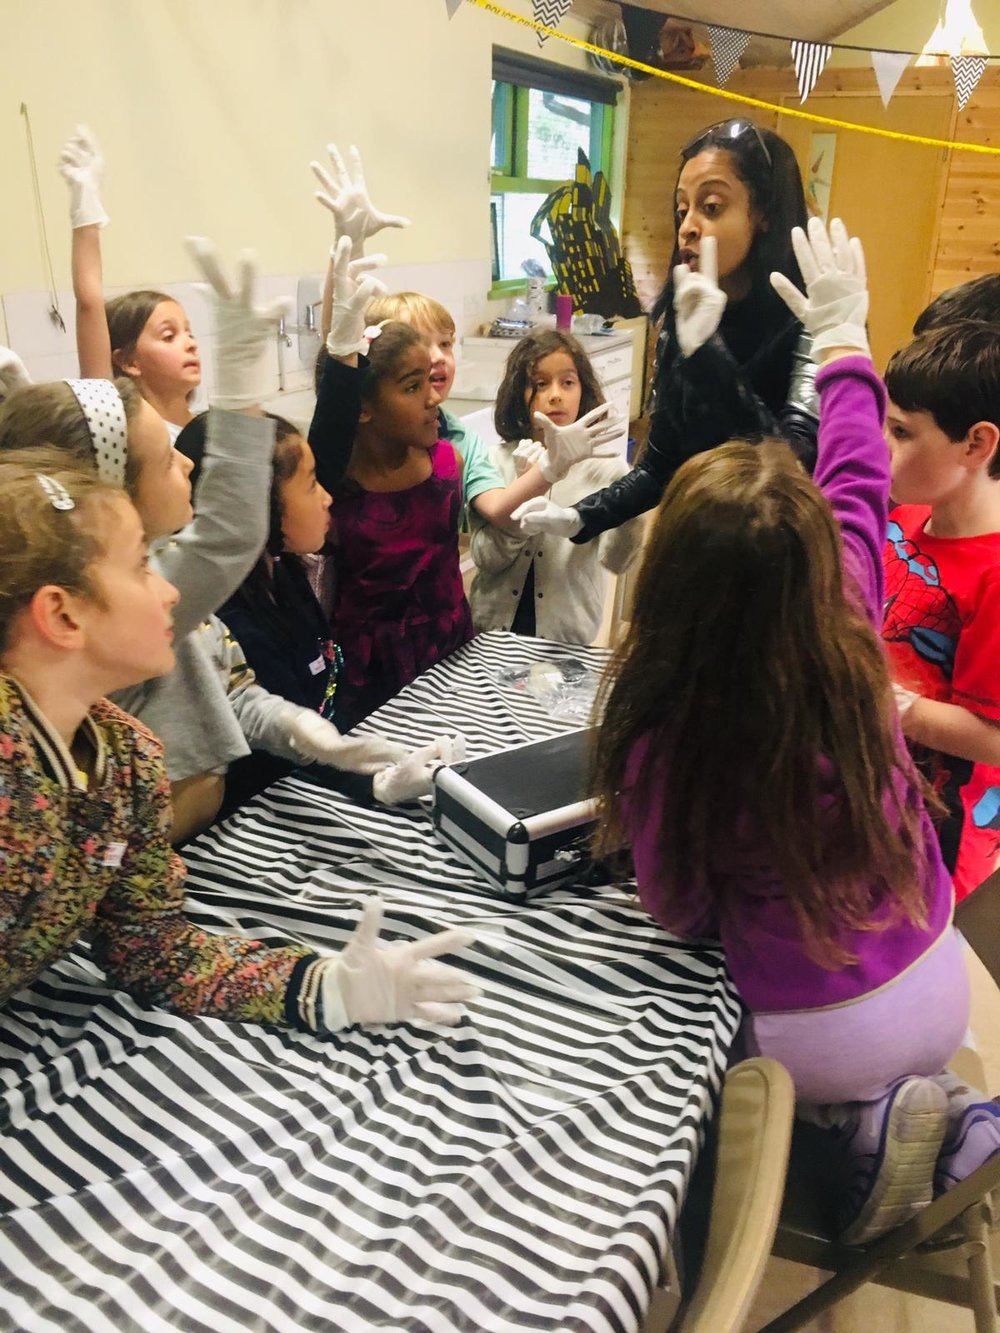 Time to find the culprit… - The kids learn how to lift fingerprints from the crime scene and identify the criminal by comparing handwriting!